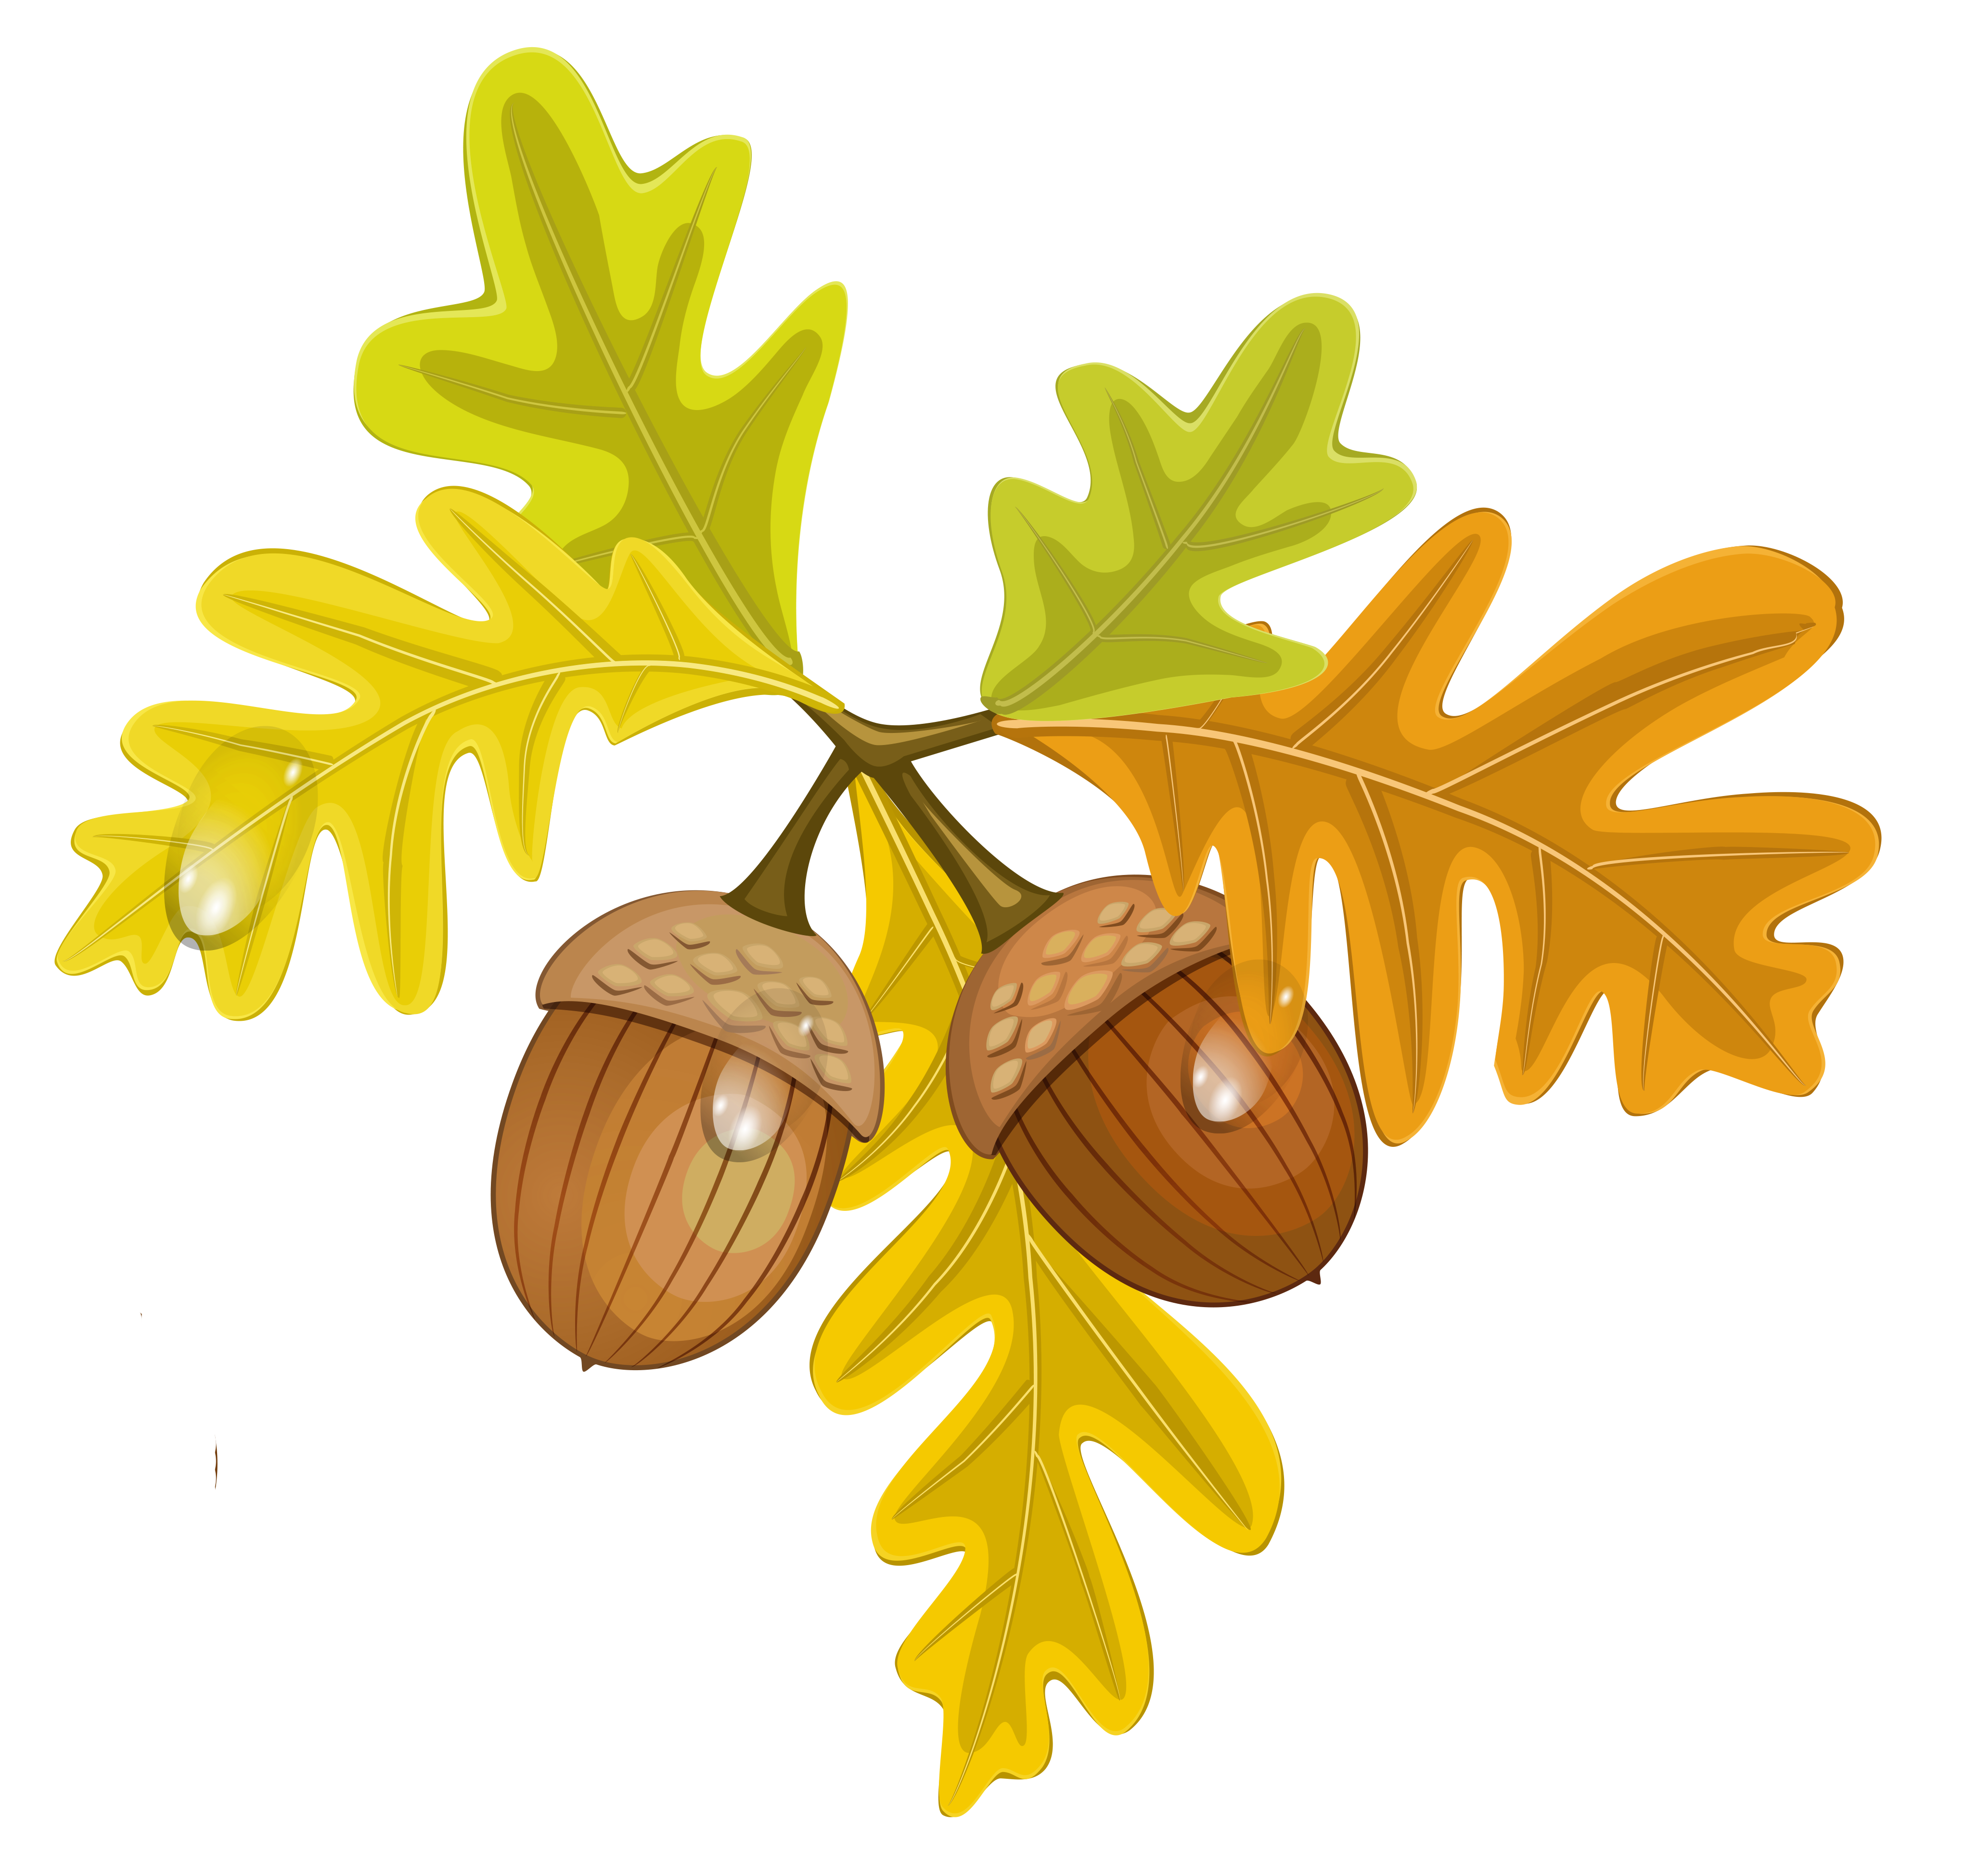 Acorn tree clipart picture transparent library Transparent_Fall_Leaves_with_Acorns.png?m=1411126620 | acorn ... picture transparent library